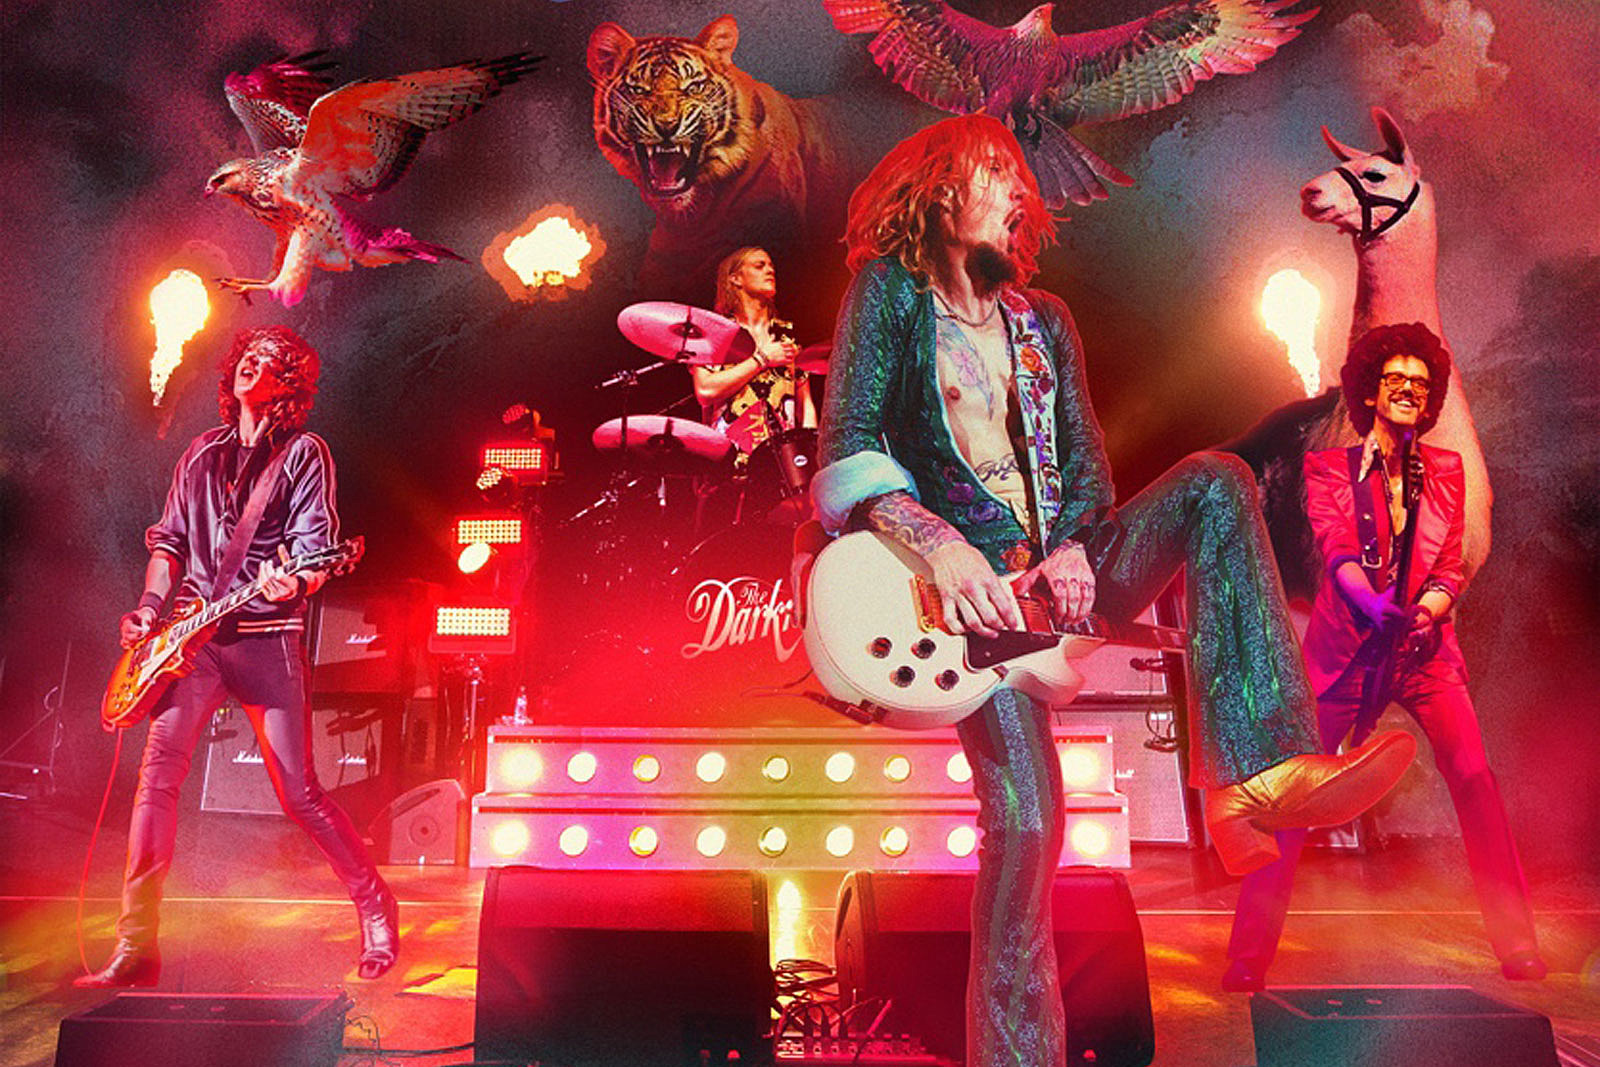 The Darkness Announce 'Live at Hammersmith' Album